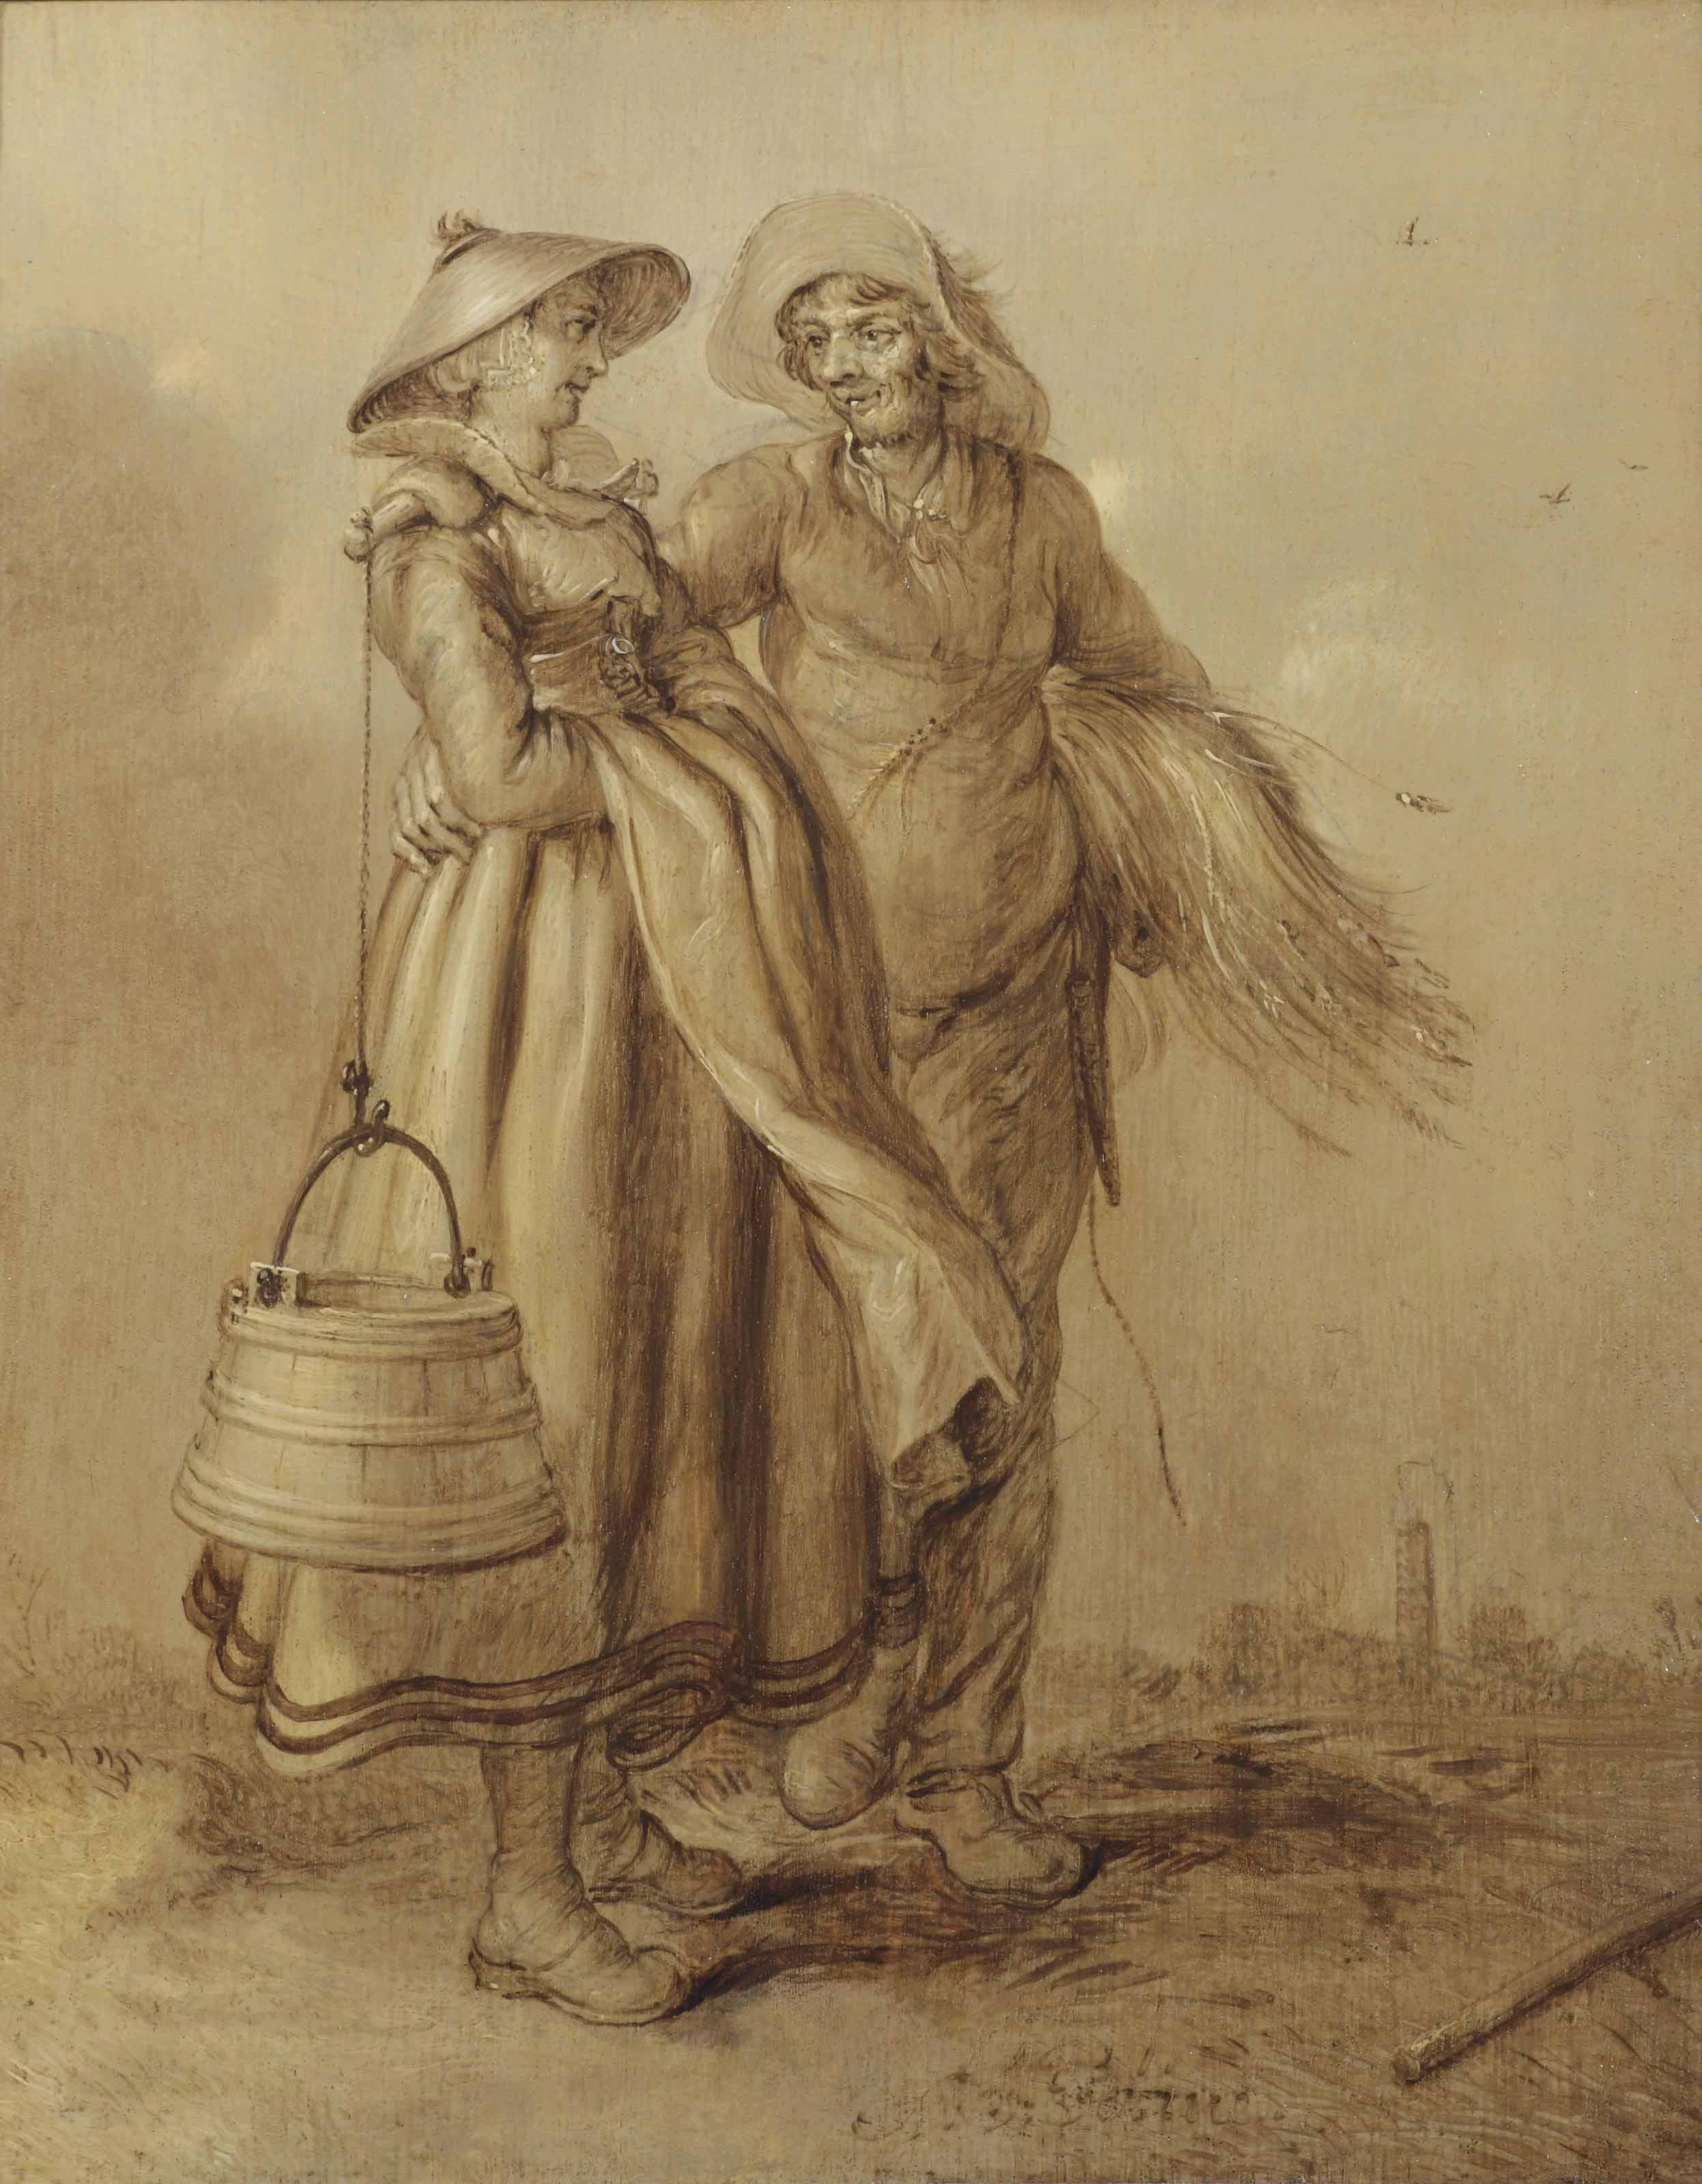 A peasant couple in a landscape